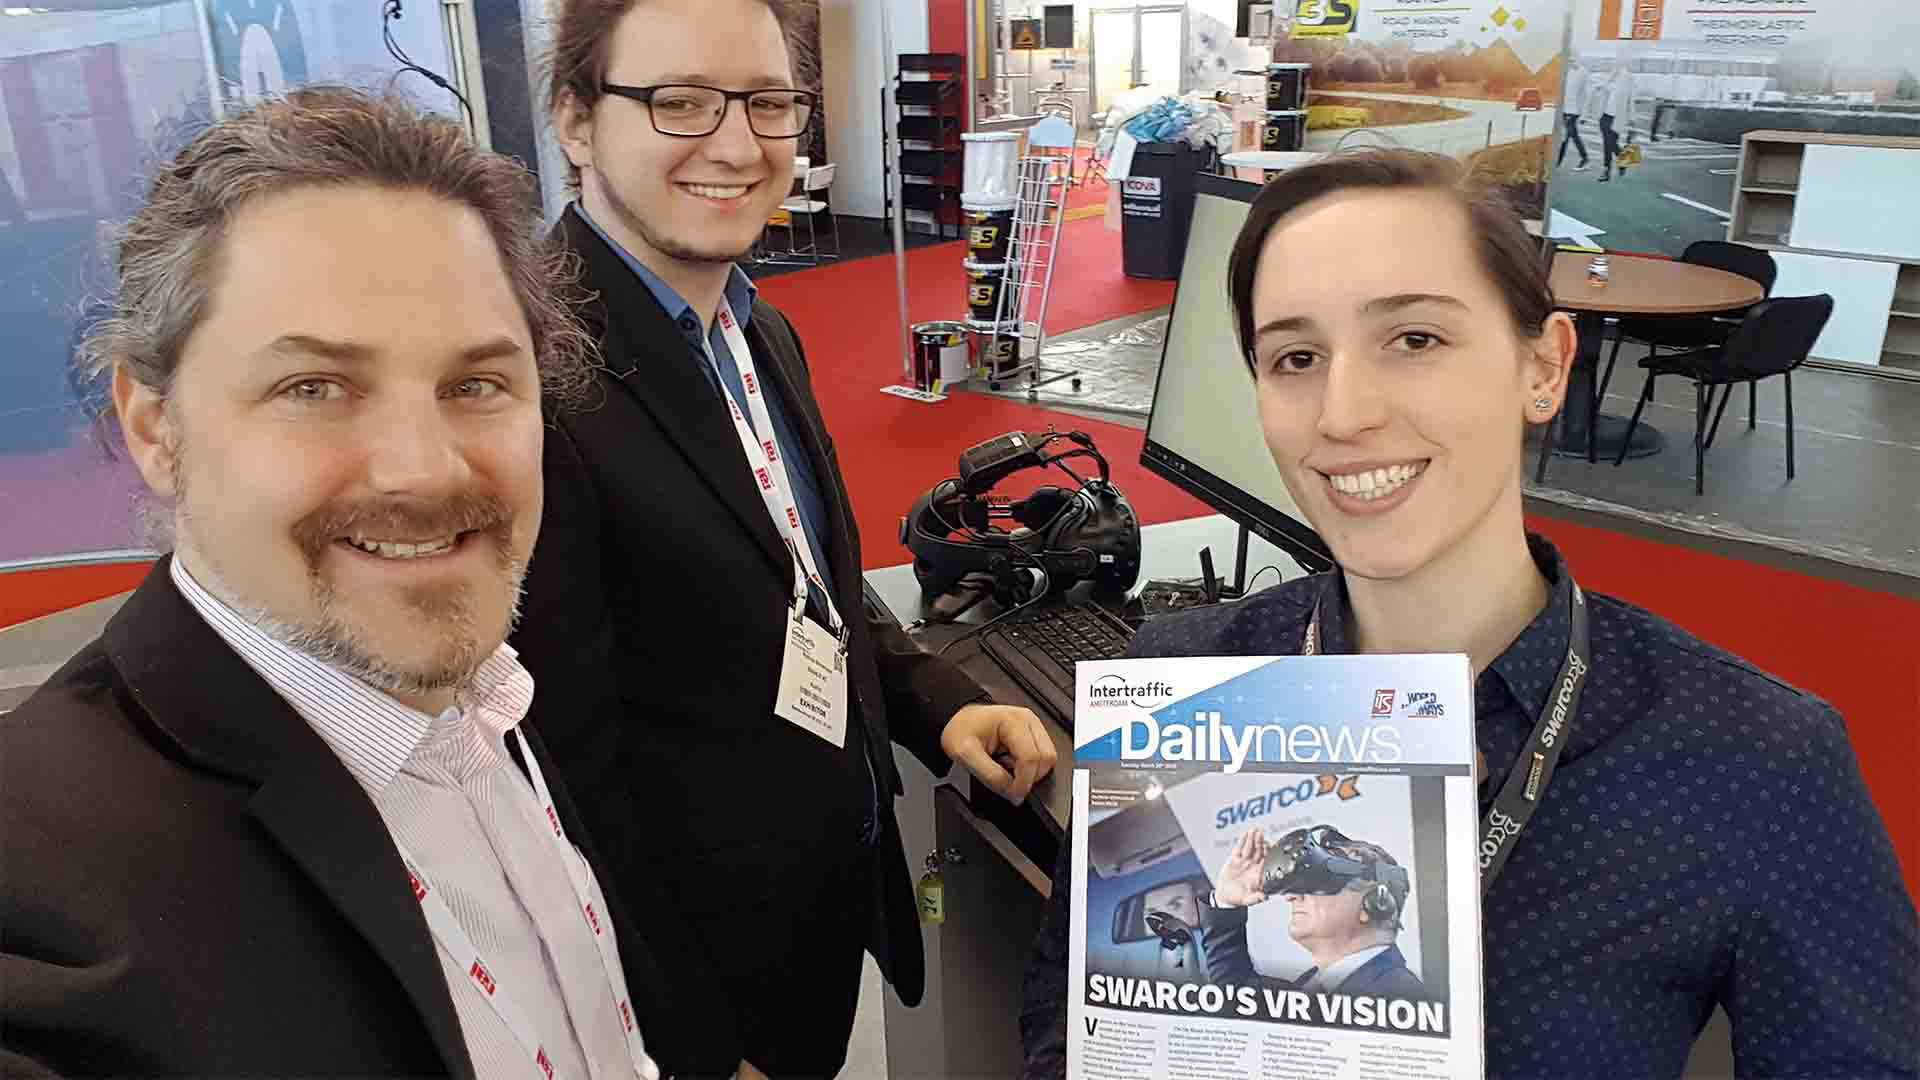 SWARCO VR Messestand